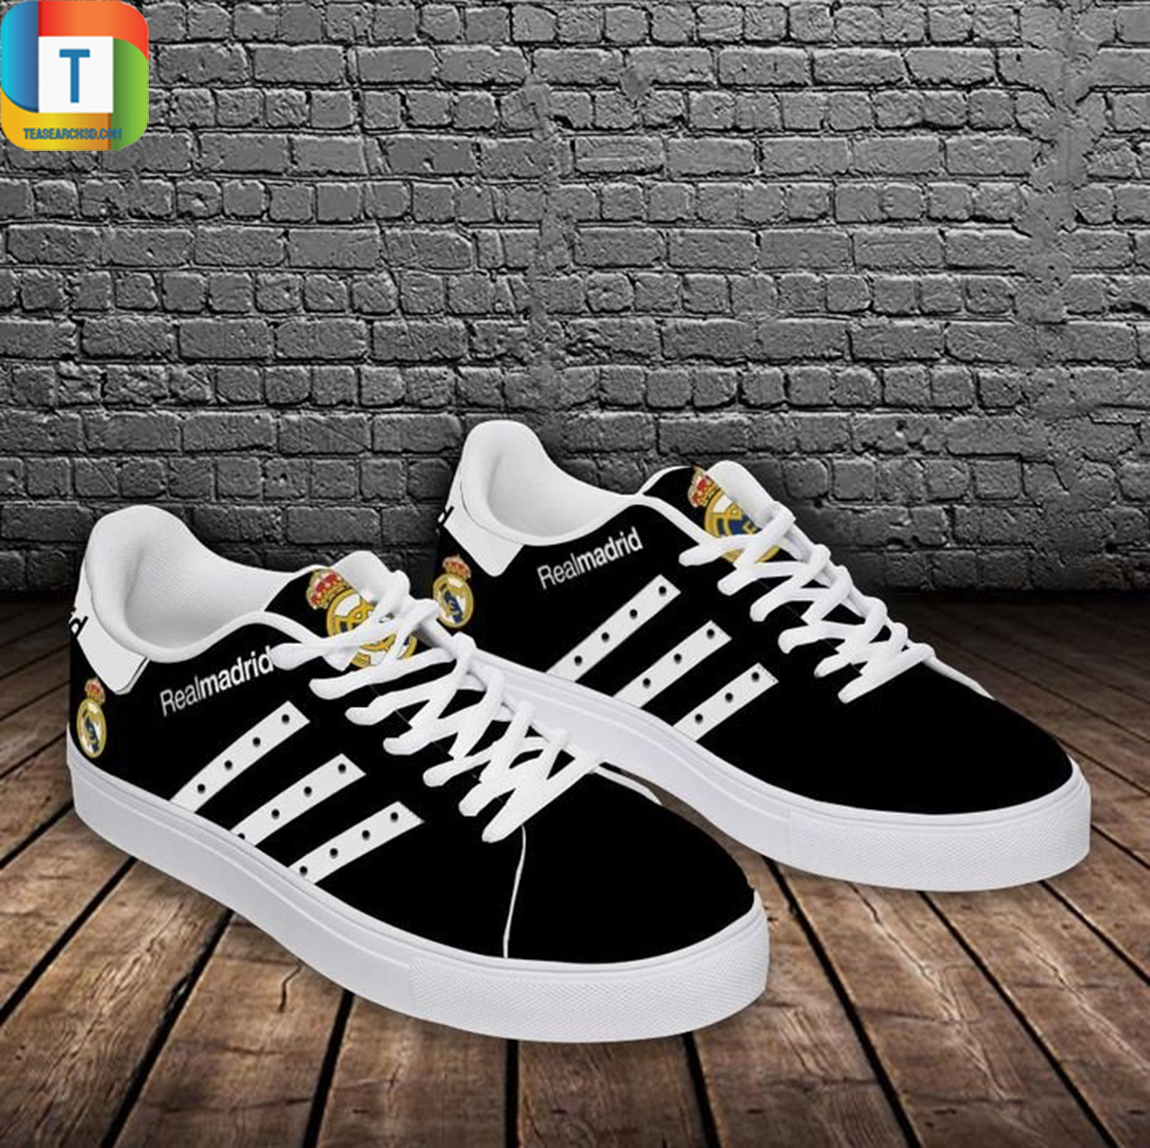 Real madrid stan smith low top shoes 3